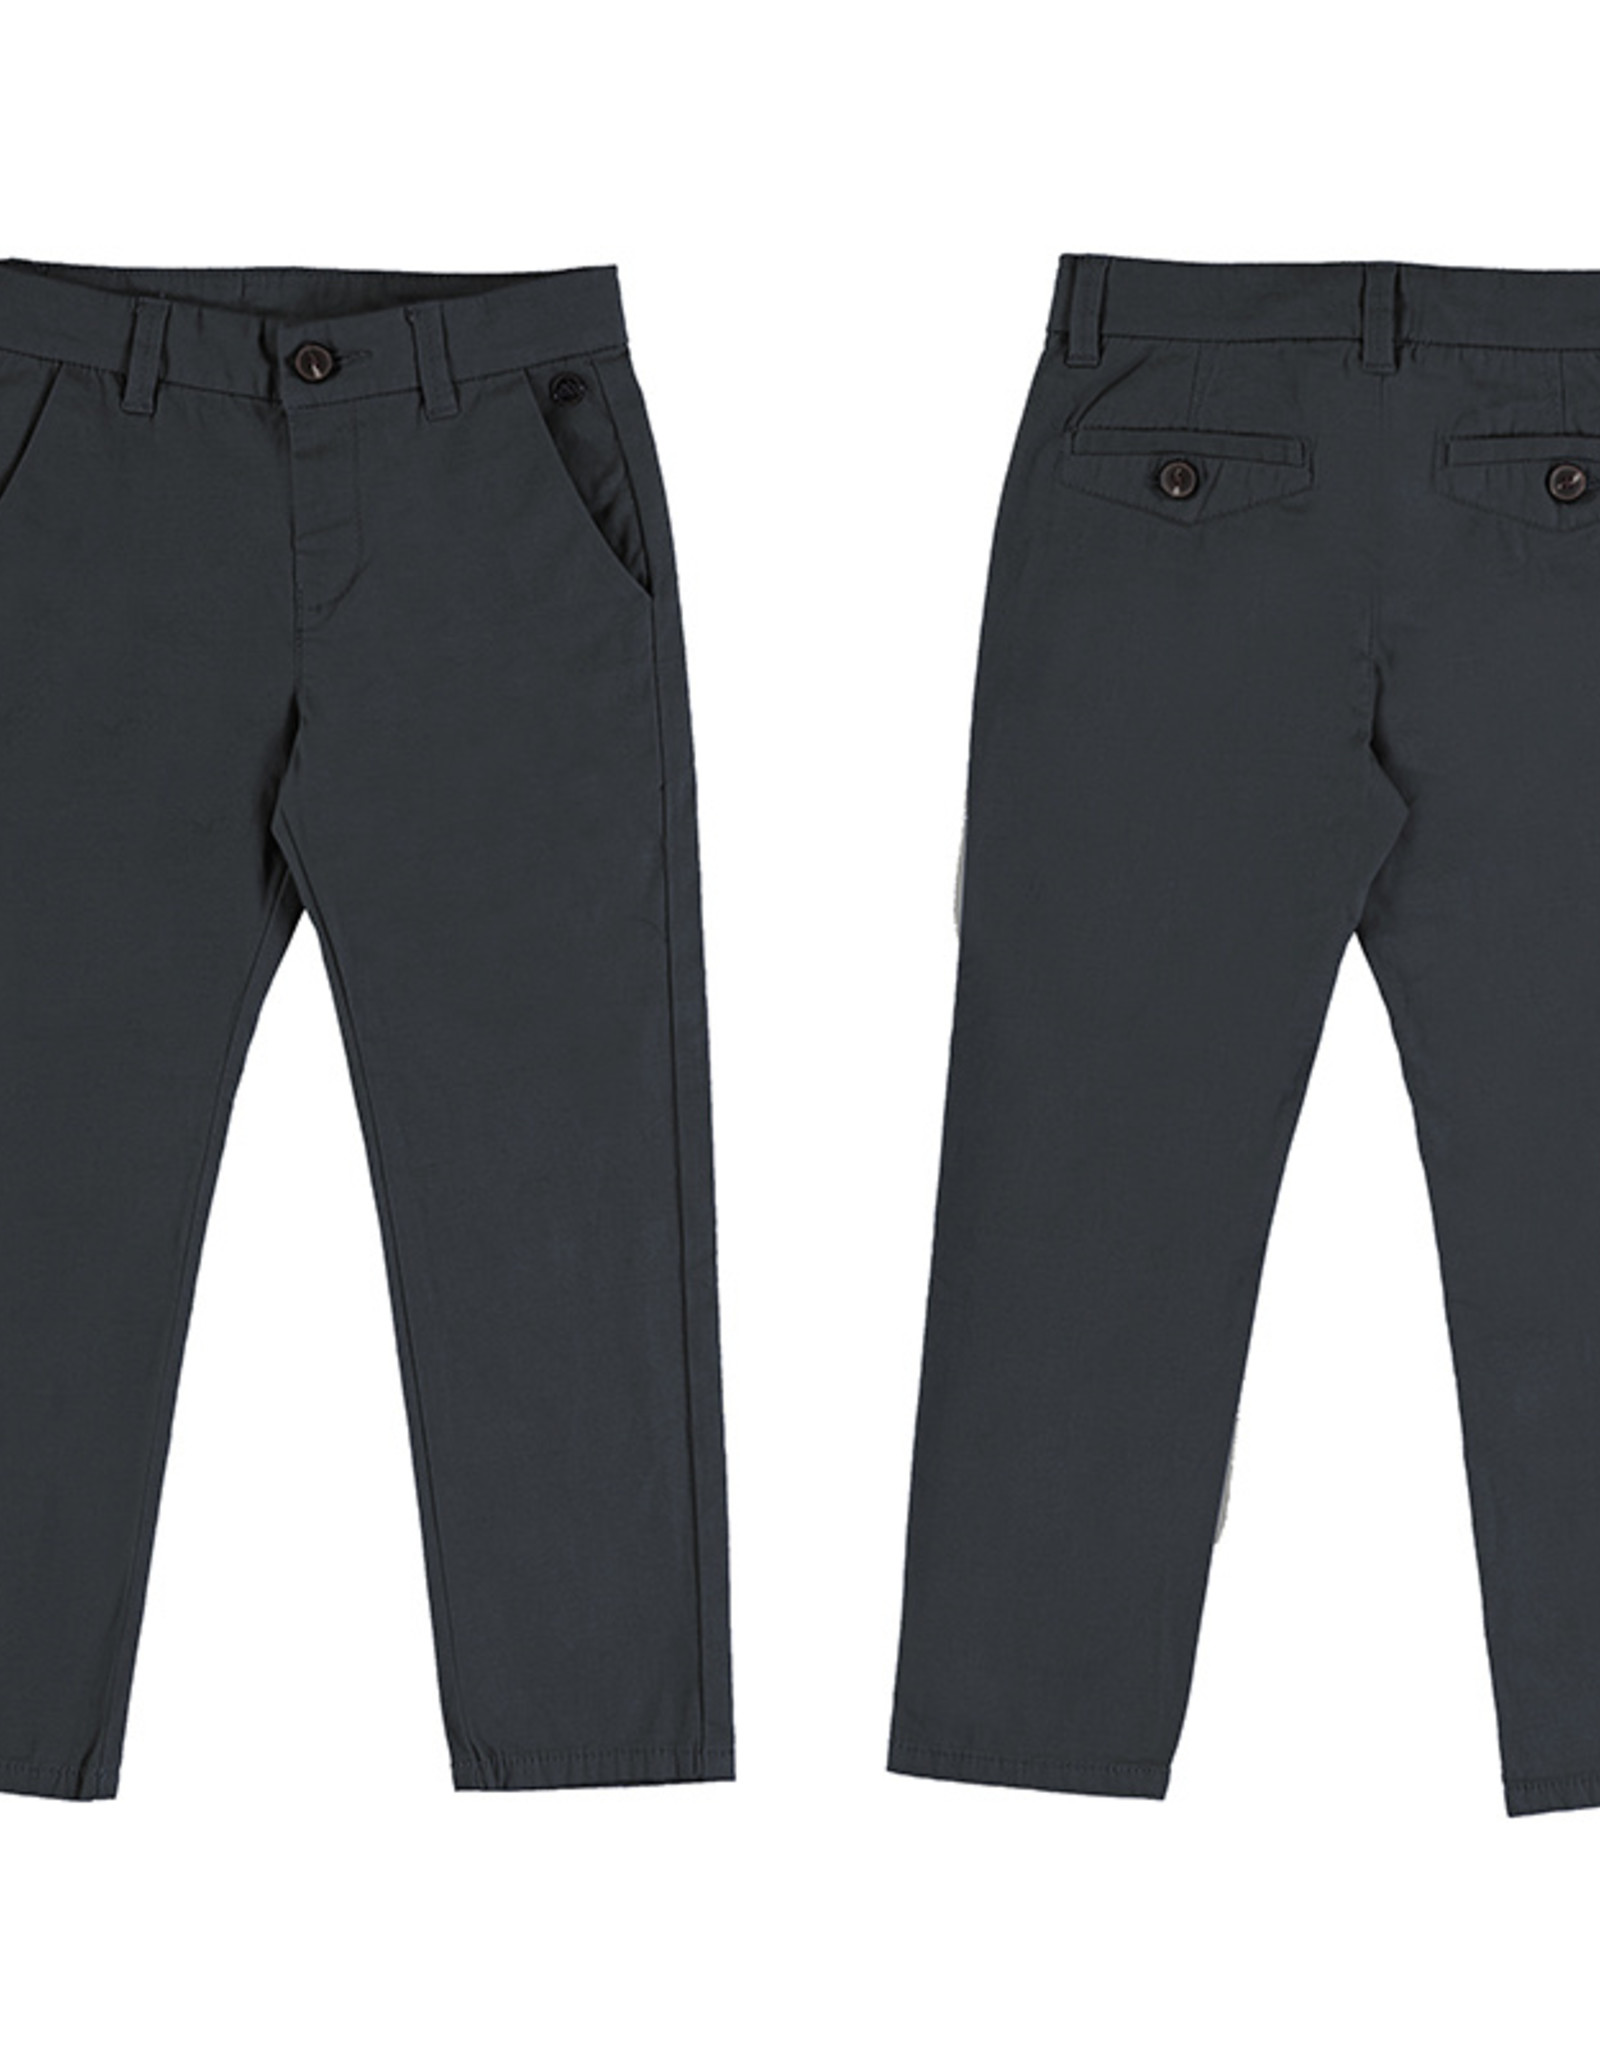 Mayoral Basic Twill Trouser in Mocha or Mineral